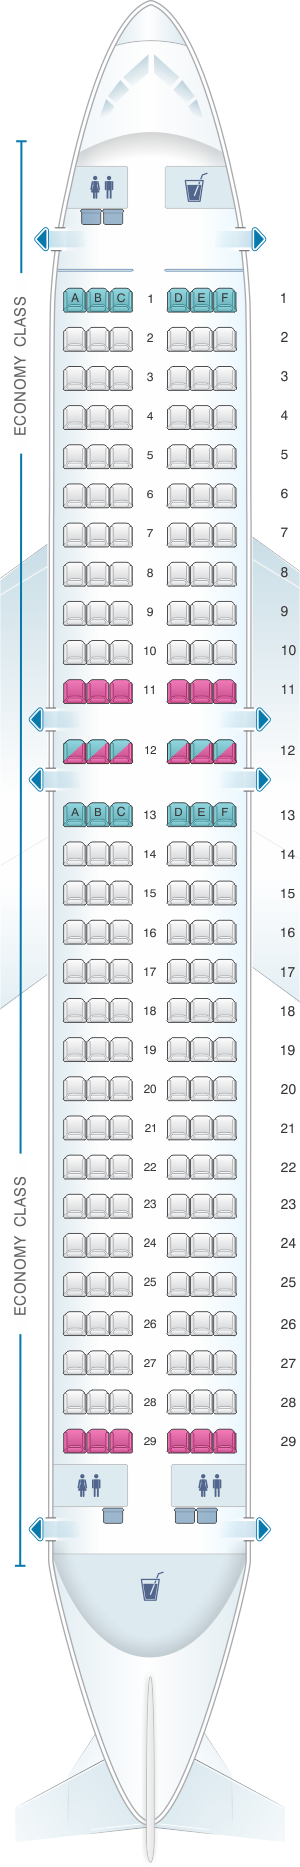 seat map airberlin airbus a320 200. Black Bedroom Furniture Sets. Home Design Ideas